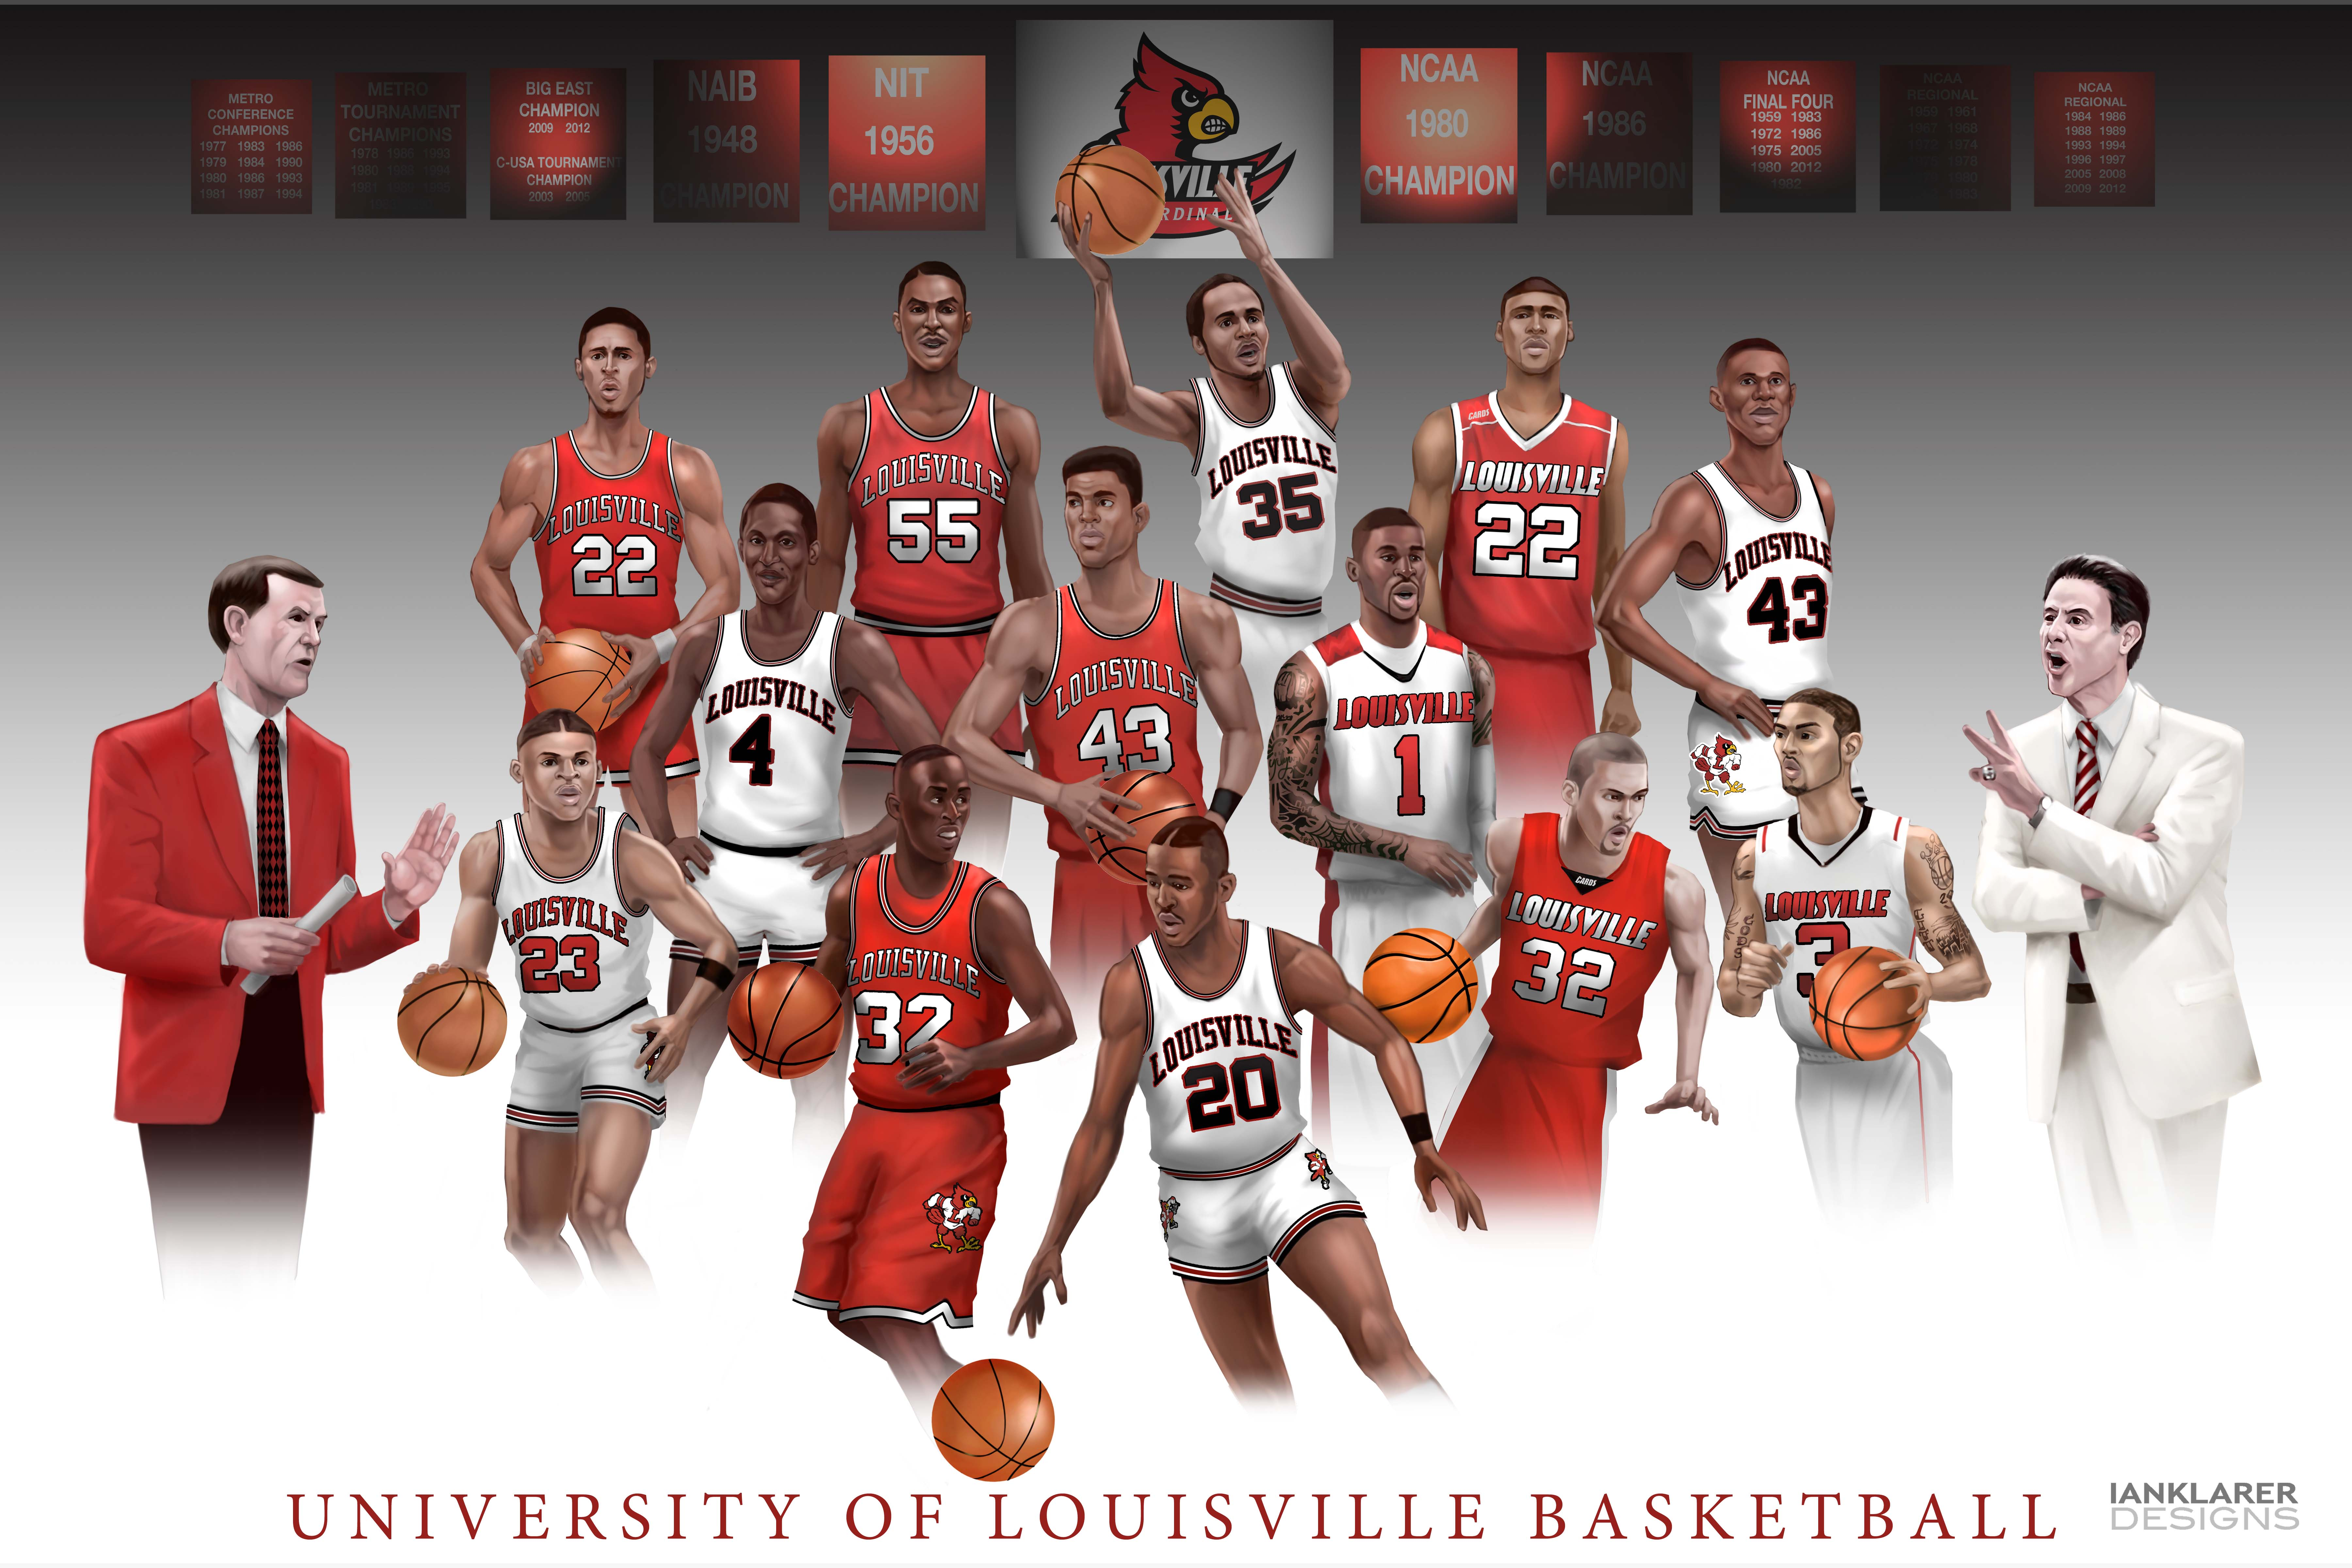 The Art Of Ian Klarer U Of L Basketball Wallpaper